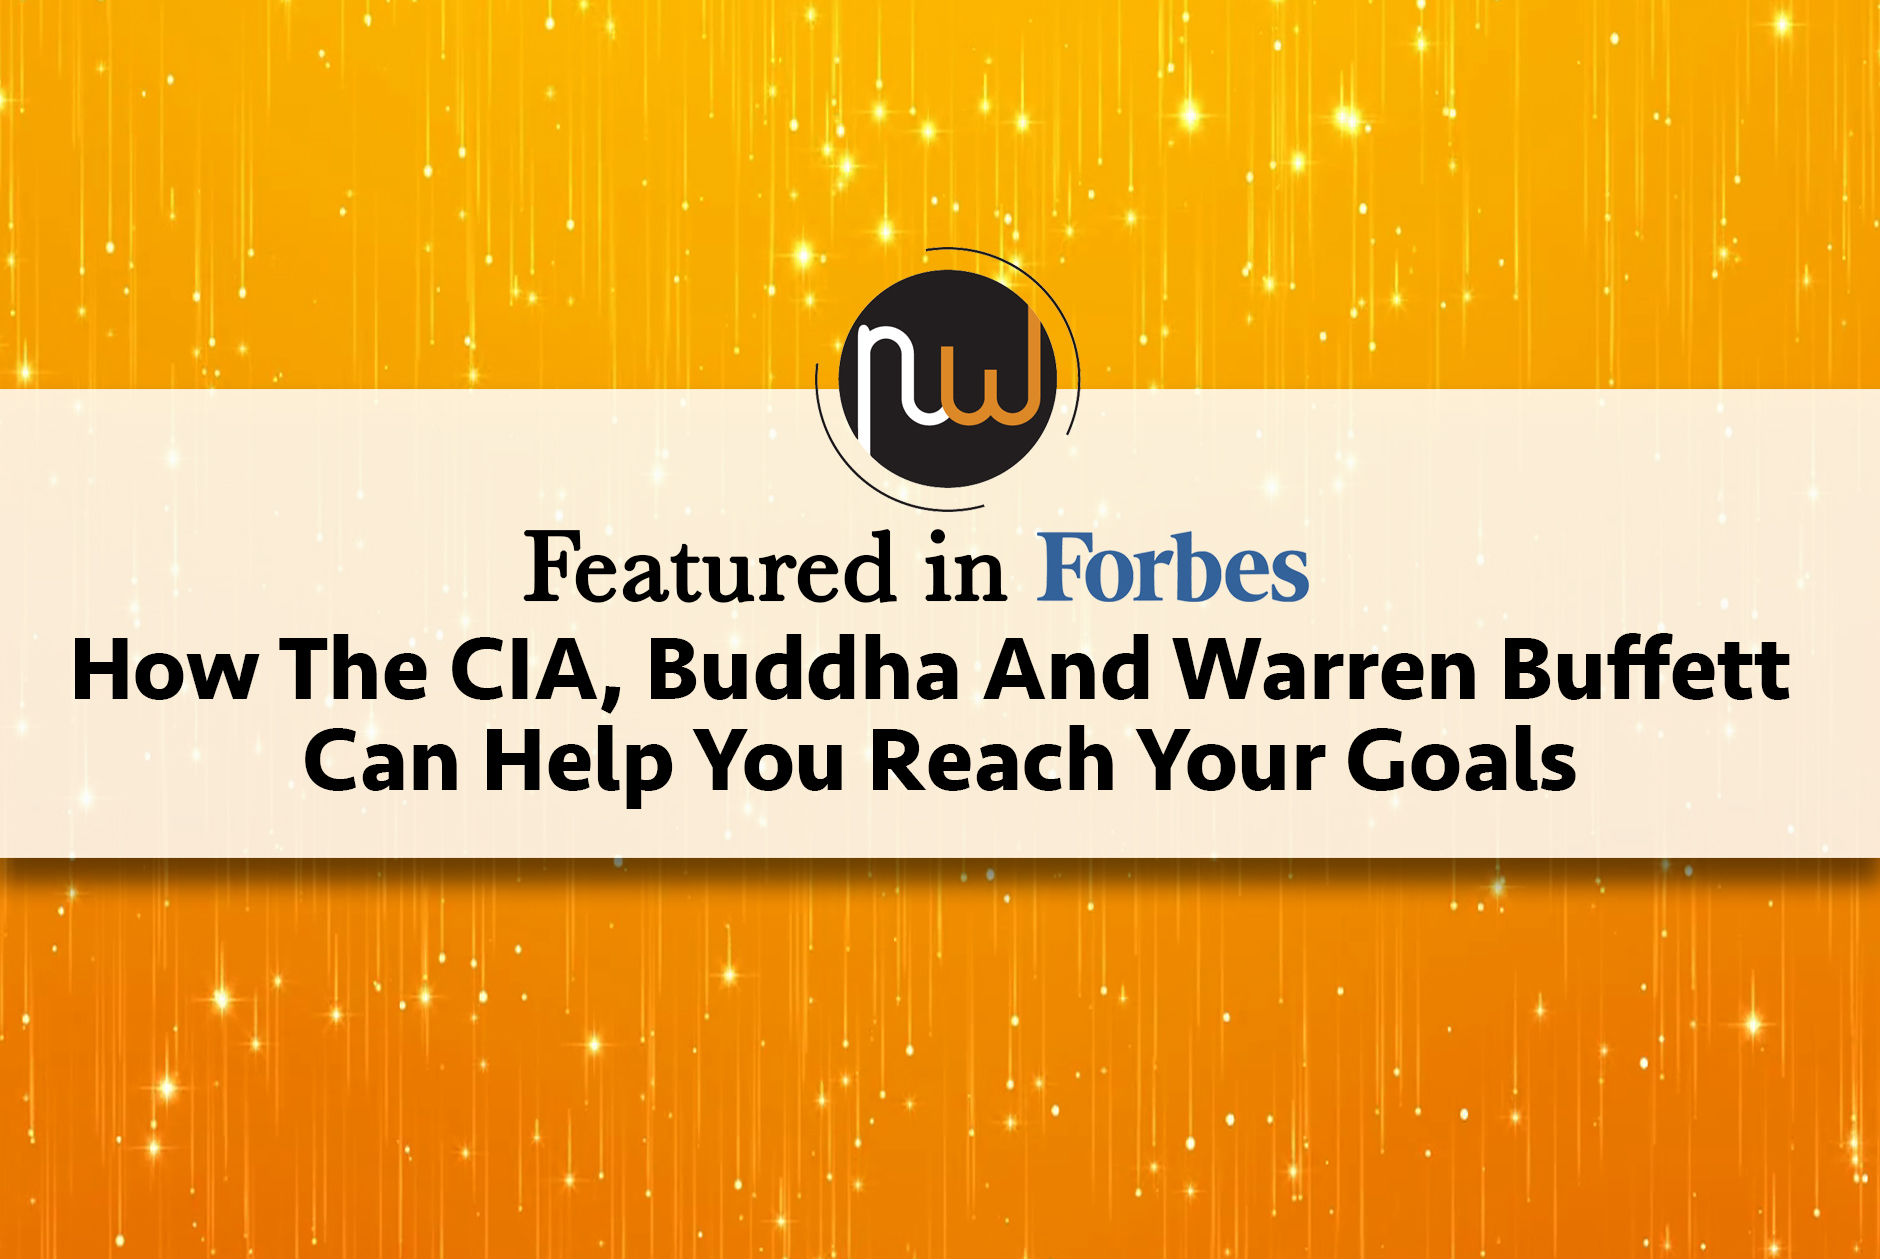 Reaching Goals: The CIA, Buddha, And Warren Buffett Can Help